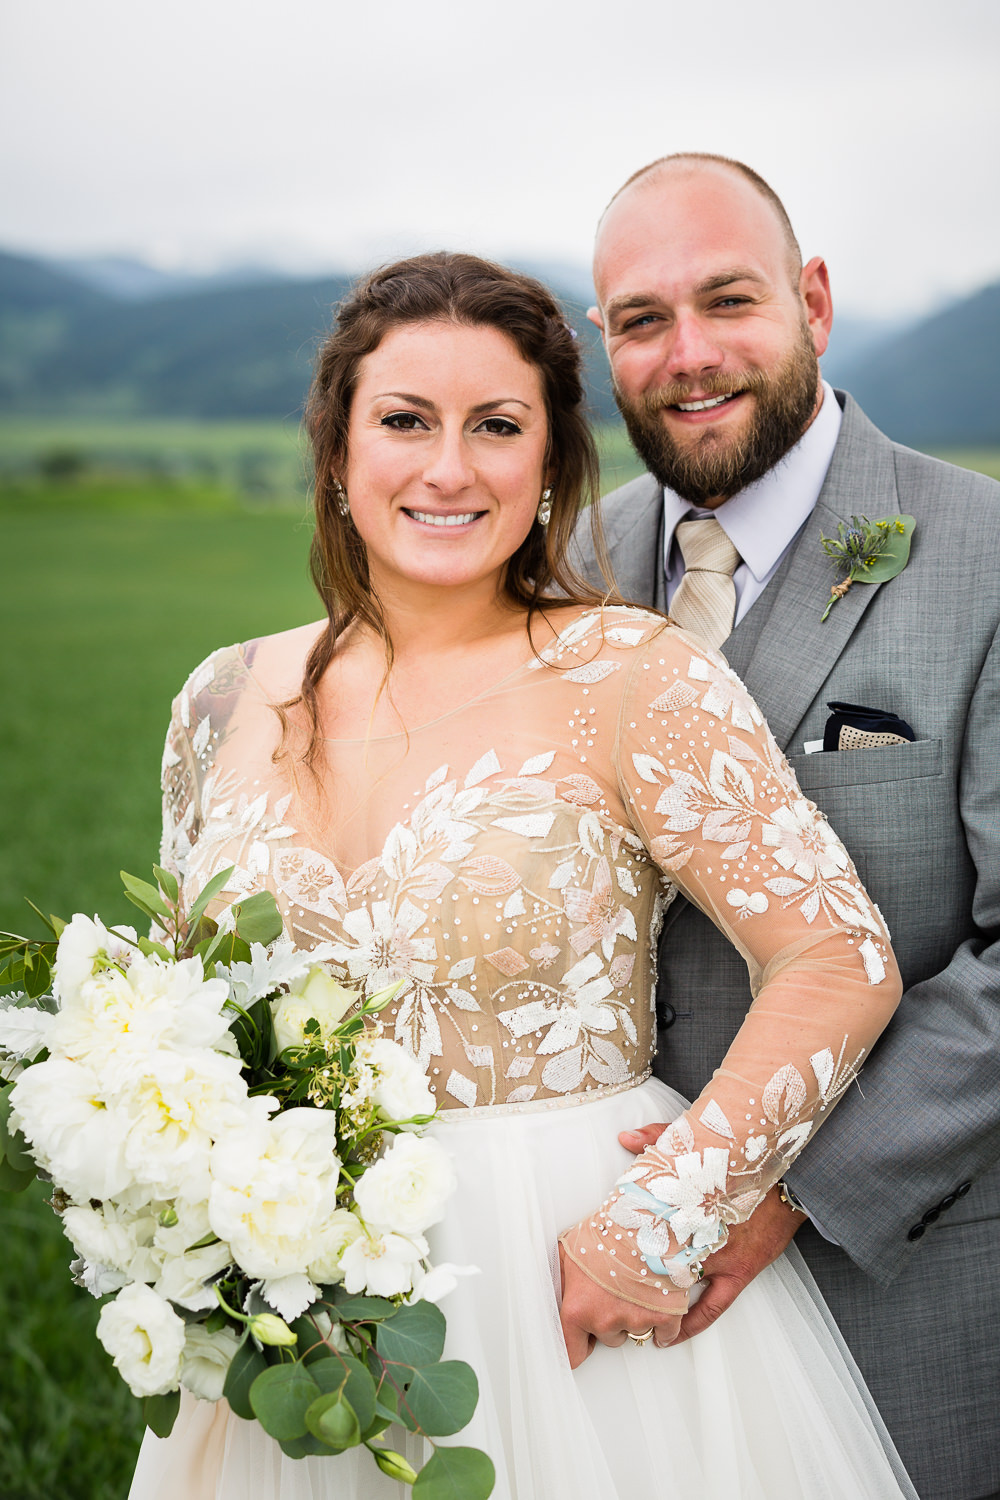 bozeman-hart-ranch-wedding-bride-groom-traditional-image.jpg